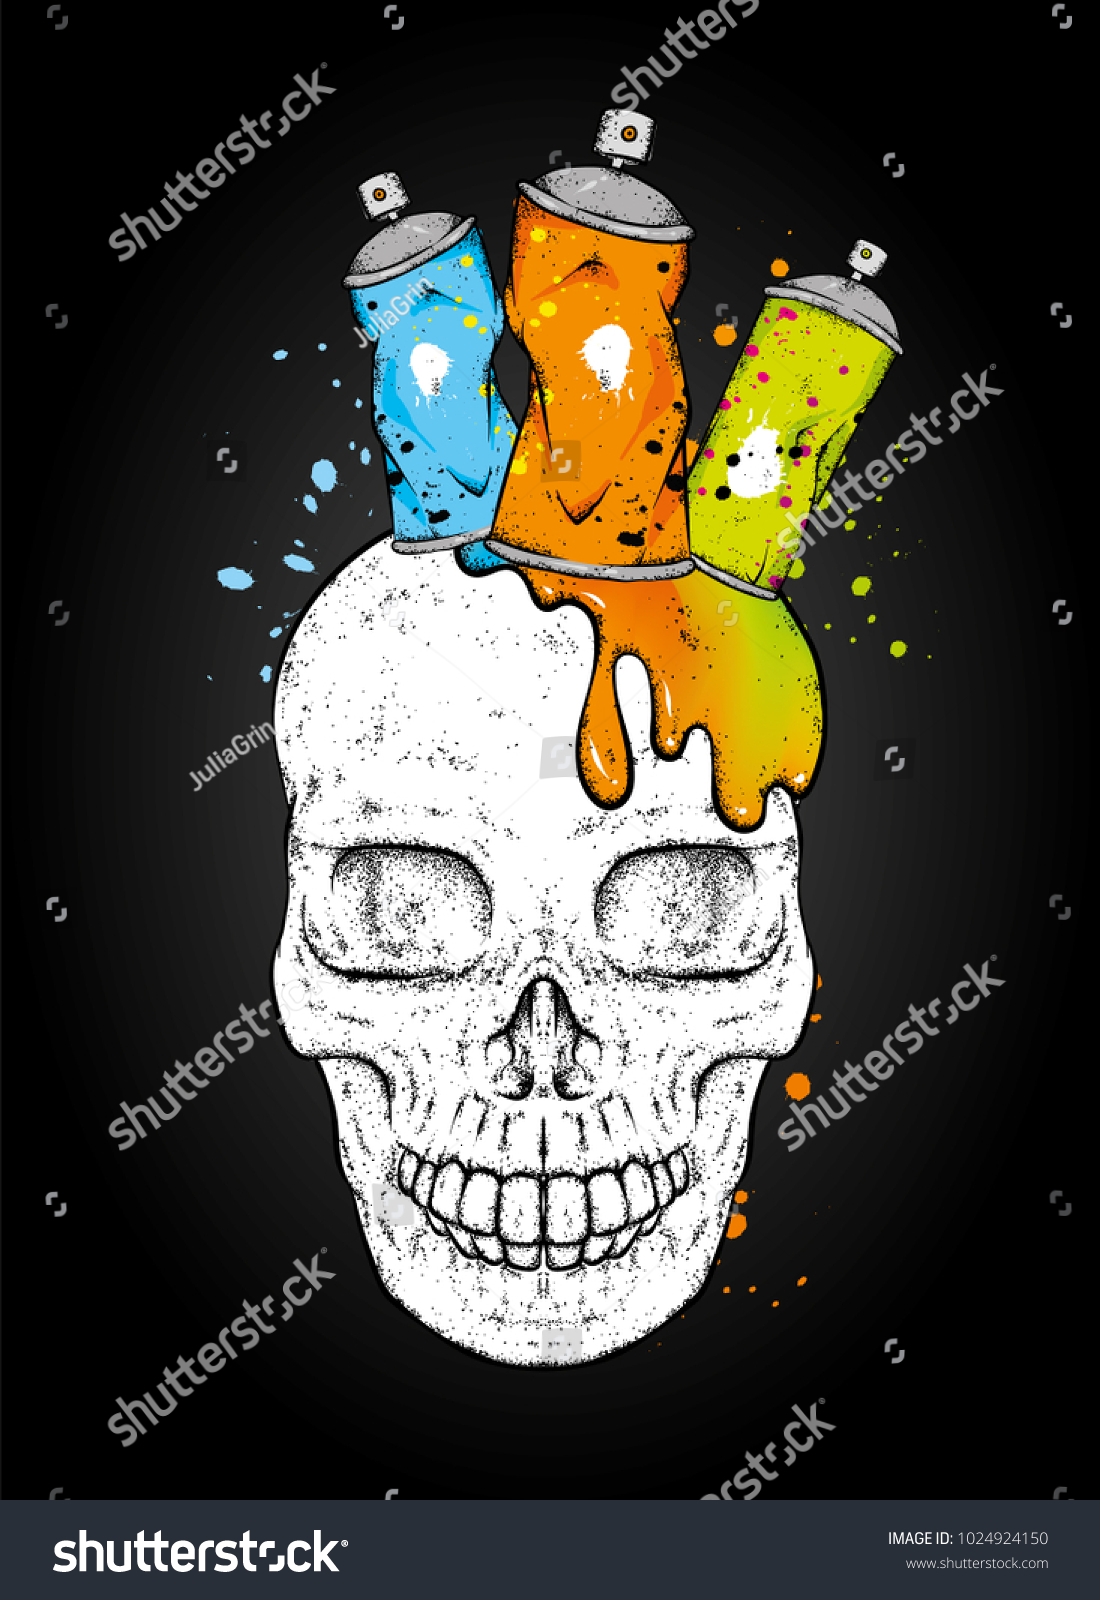 Skull And Ballons With Paint For Graffiti Skull In The Crown Of Cans Vector